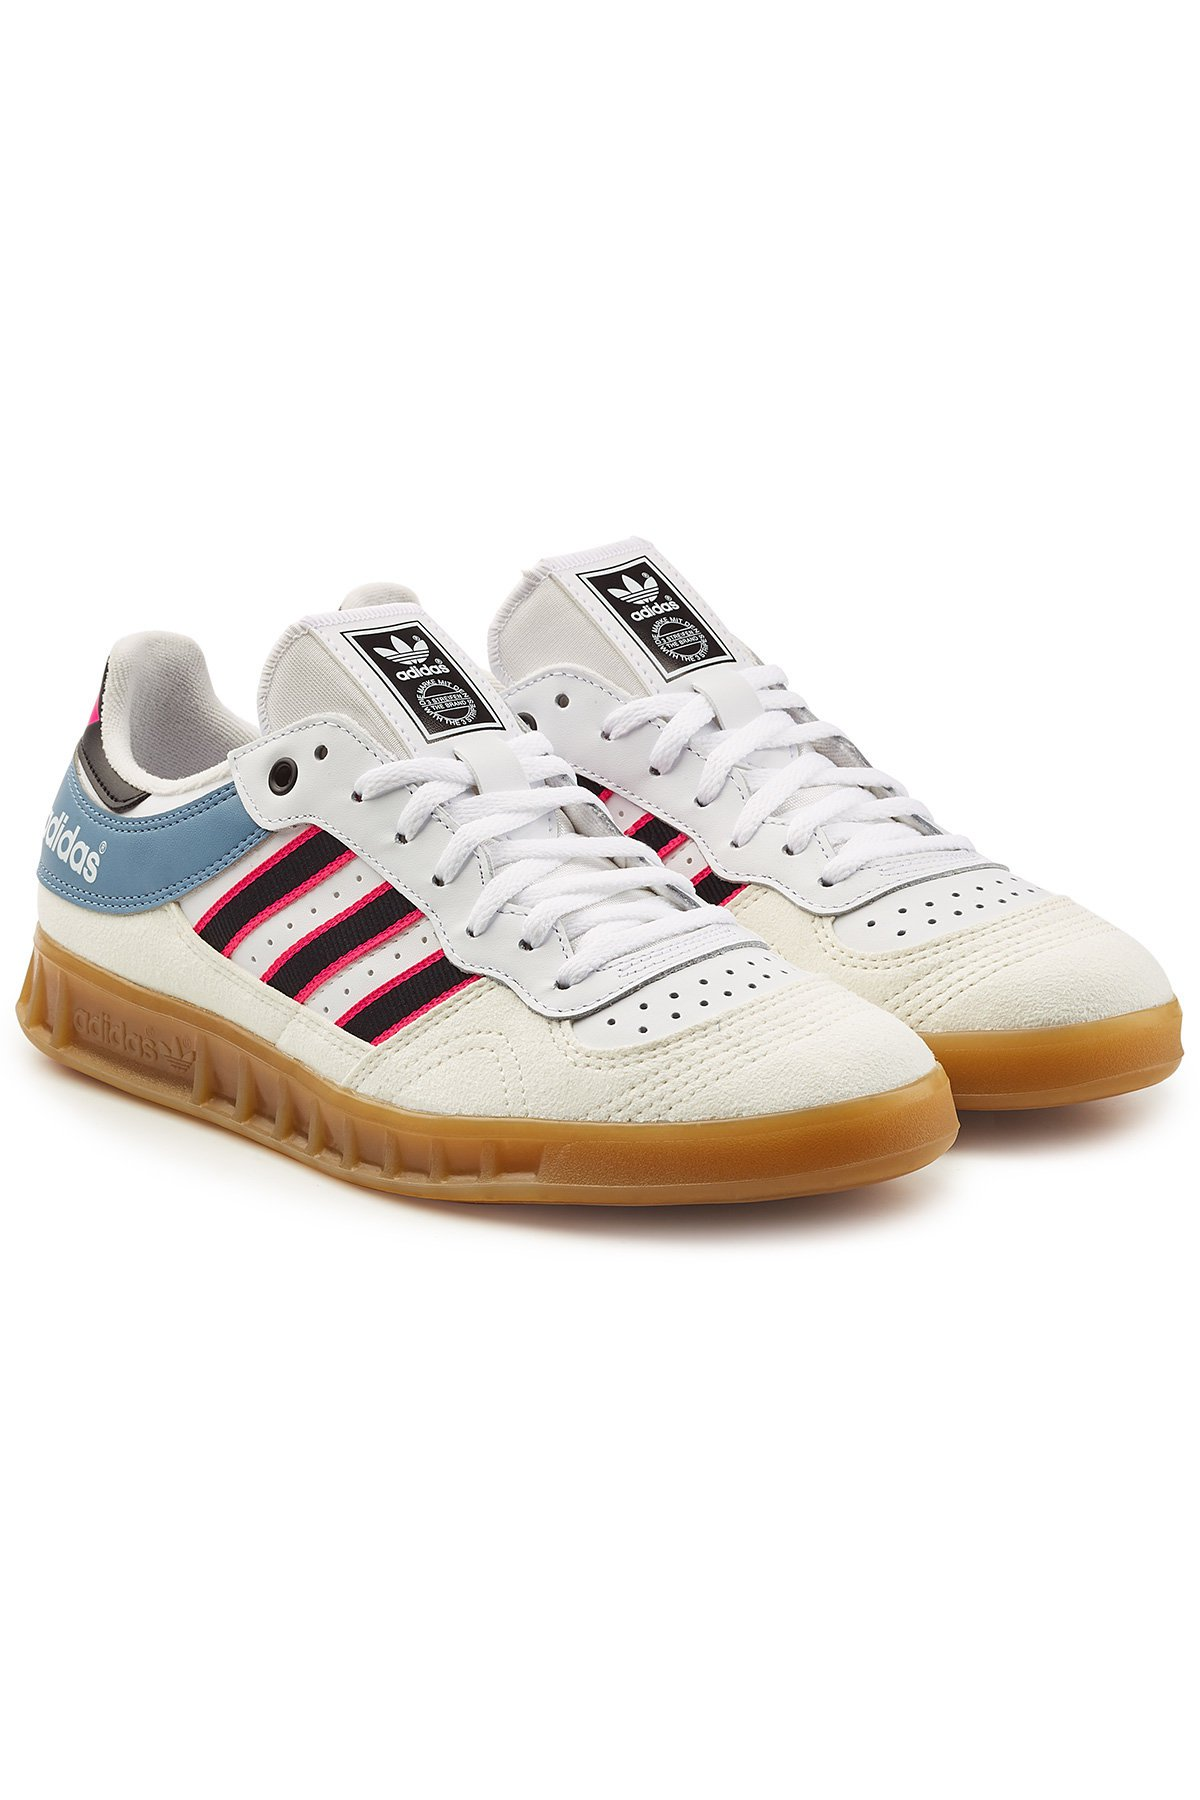 Handball Top Sneakers with Leather Gr. UK 6.5